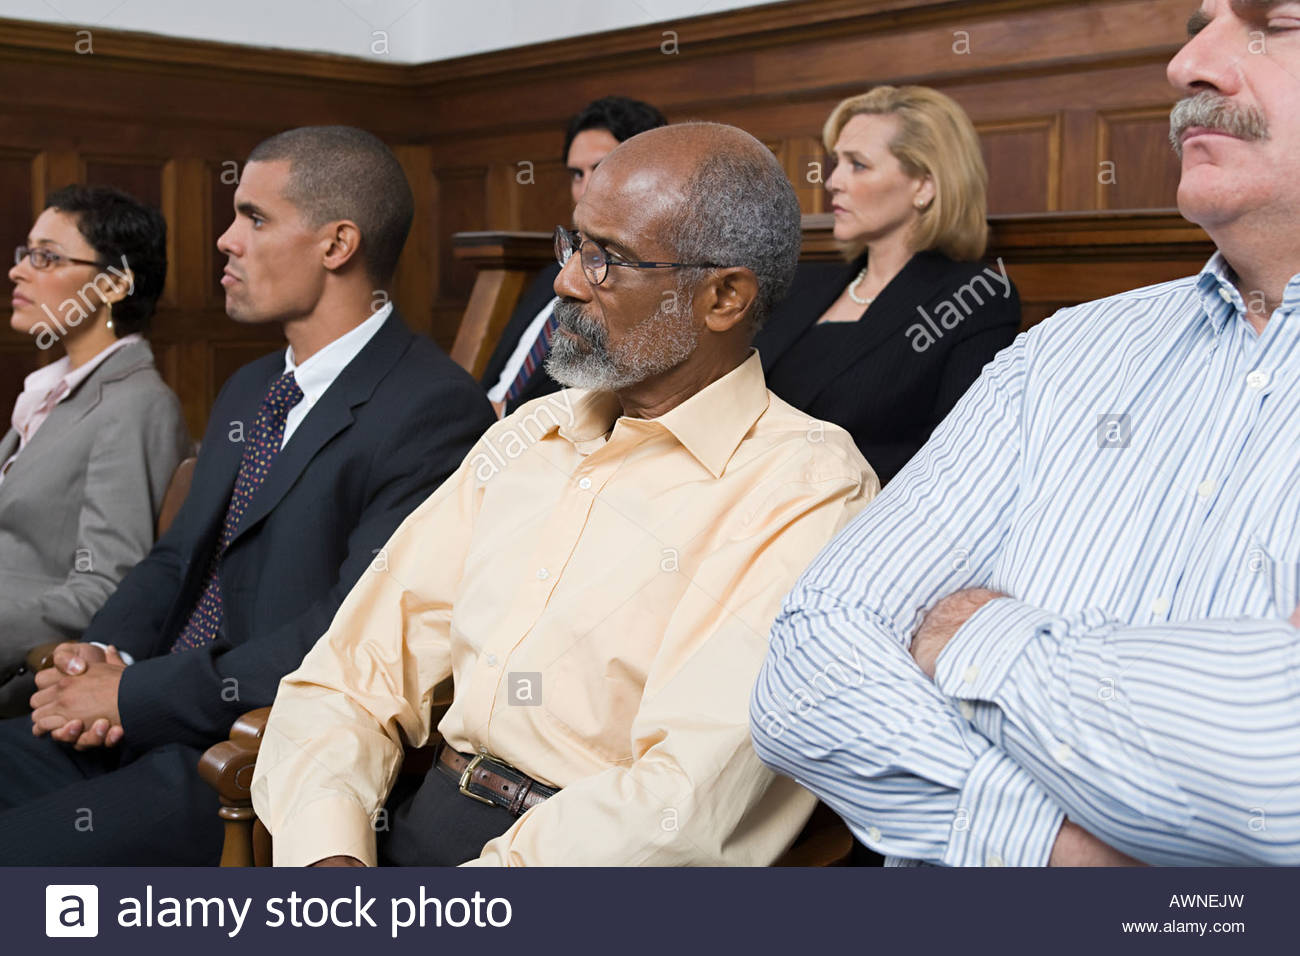 Jurors in the jury box Stock Photo